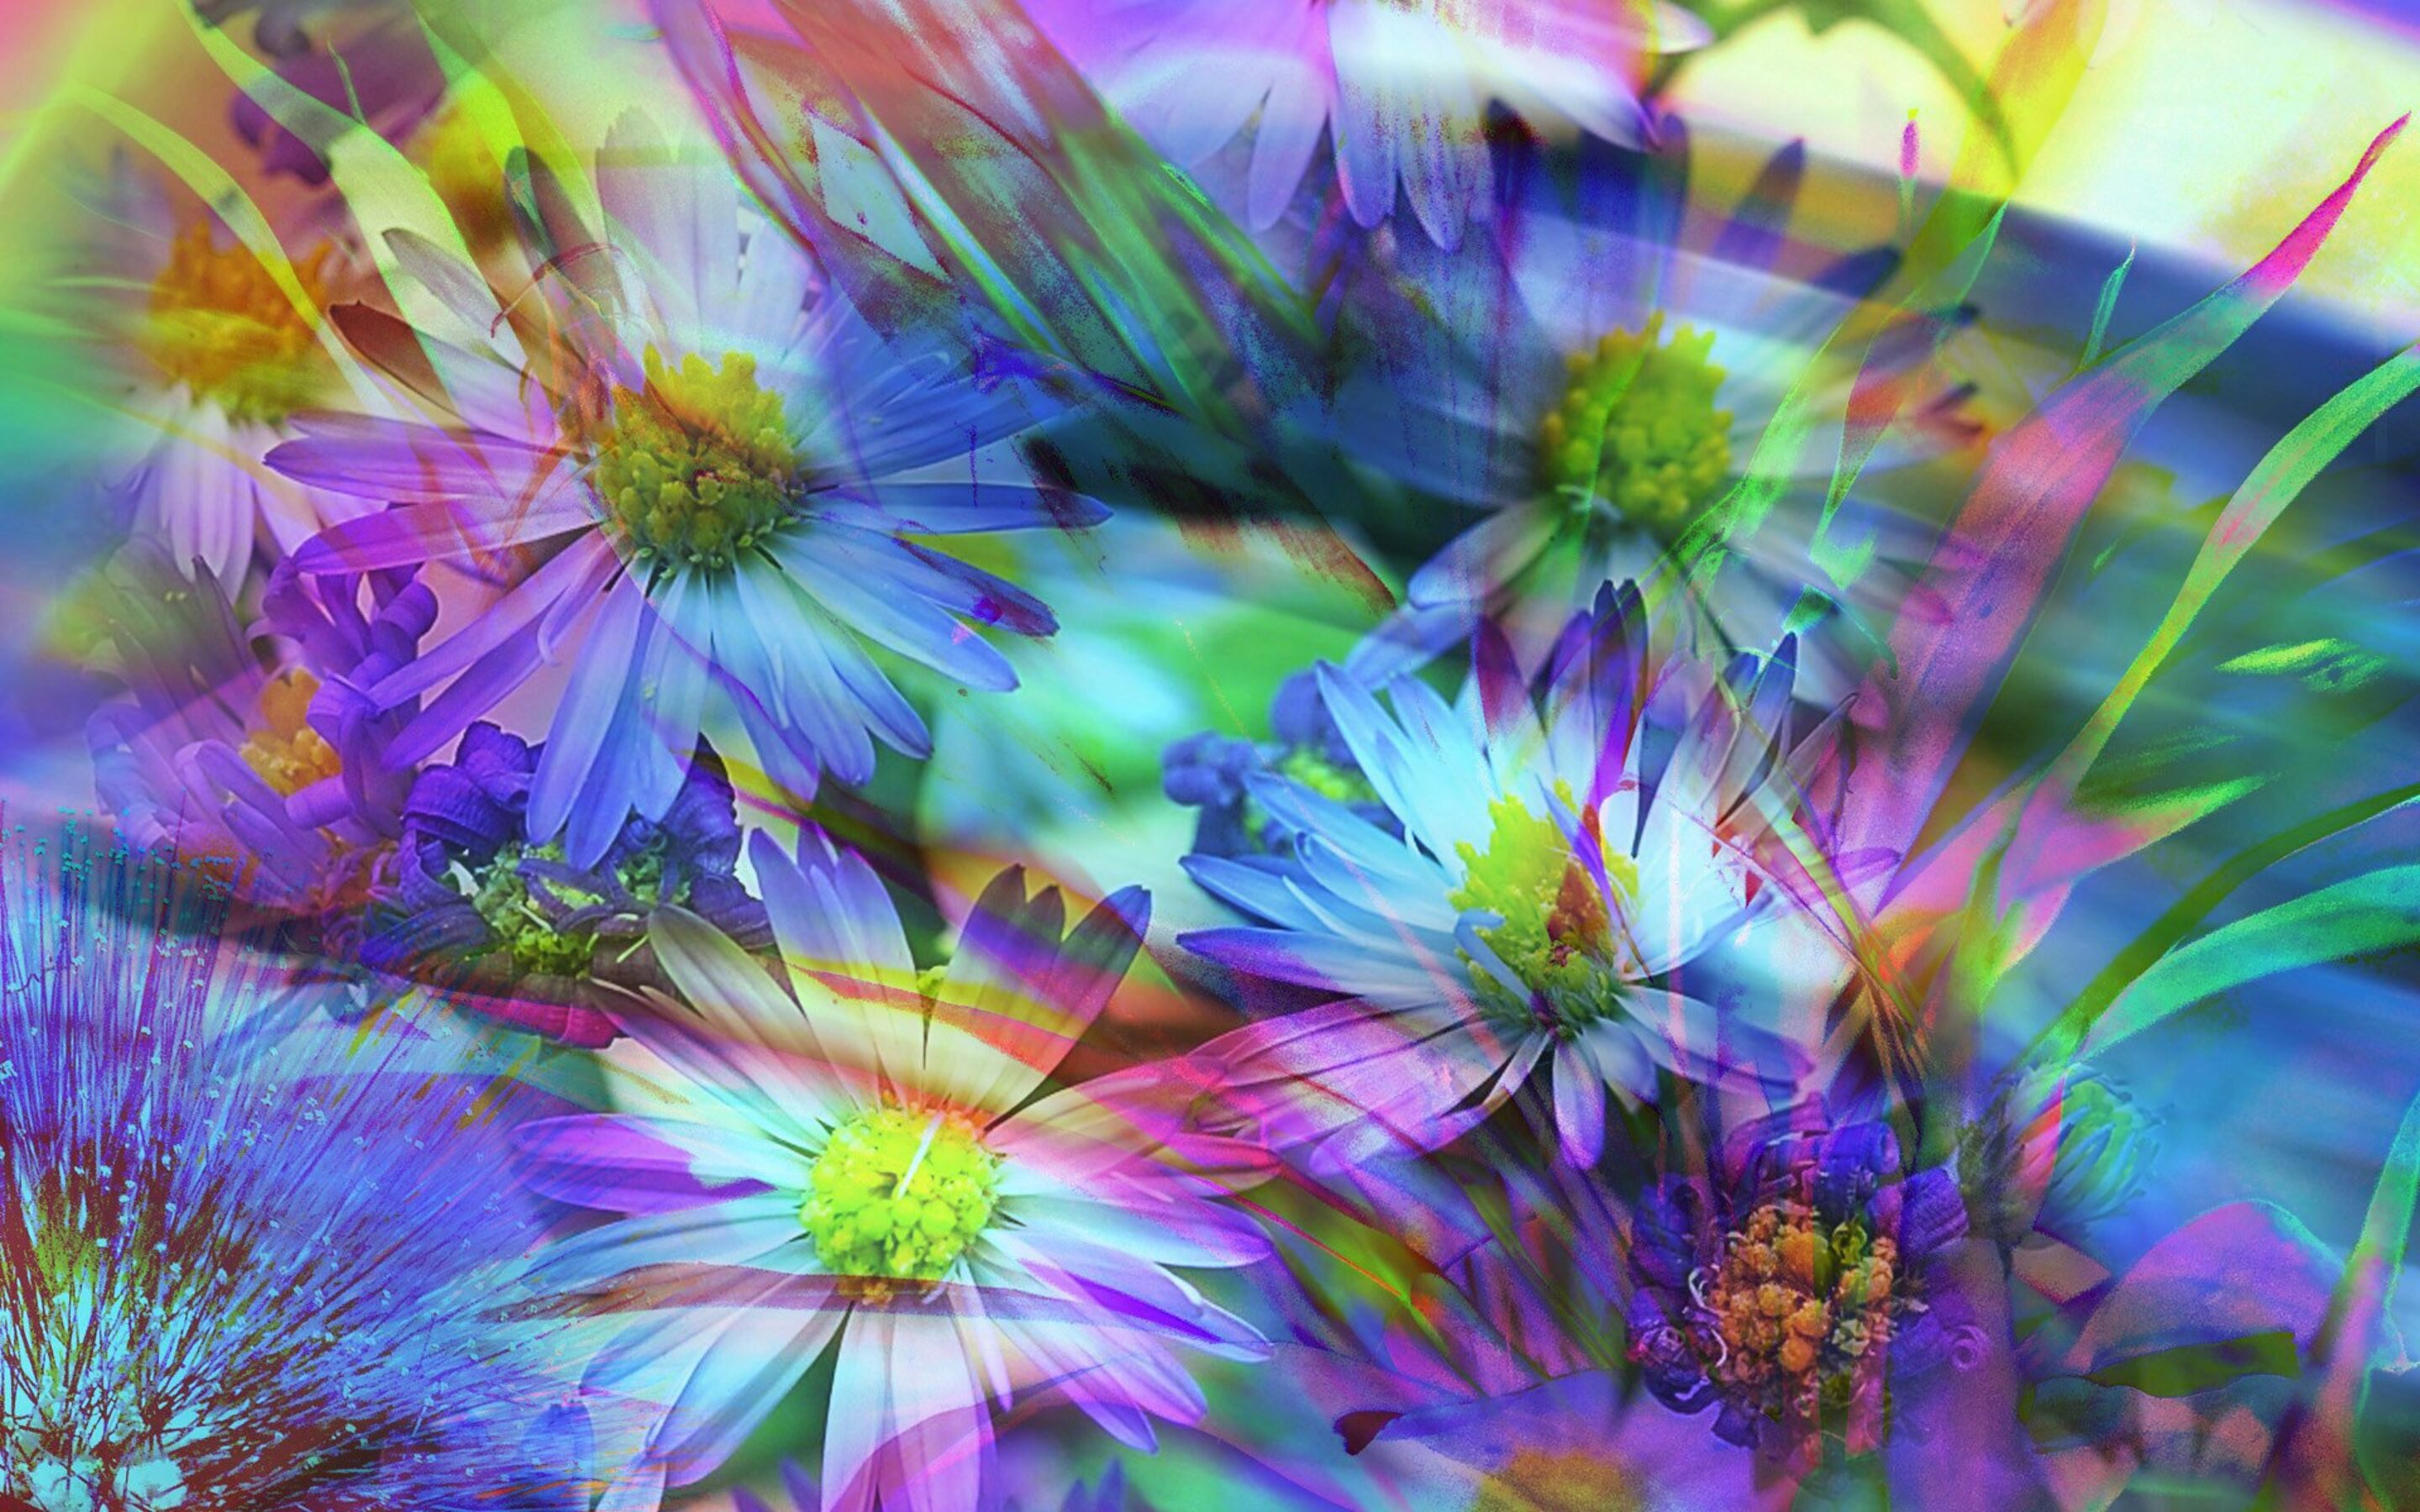 2880x1800 spring flowers abstract macbook pro retina hd 4k spring flowers abstract picg mightylinksfo